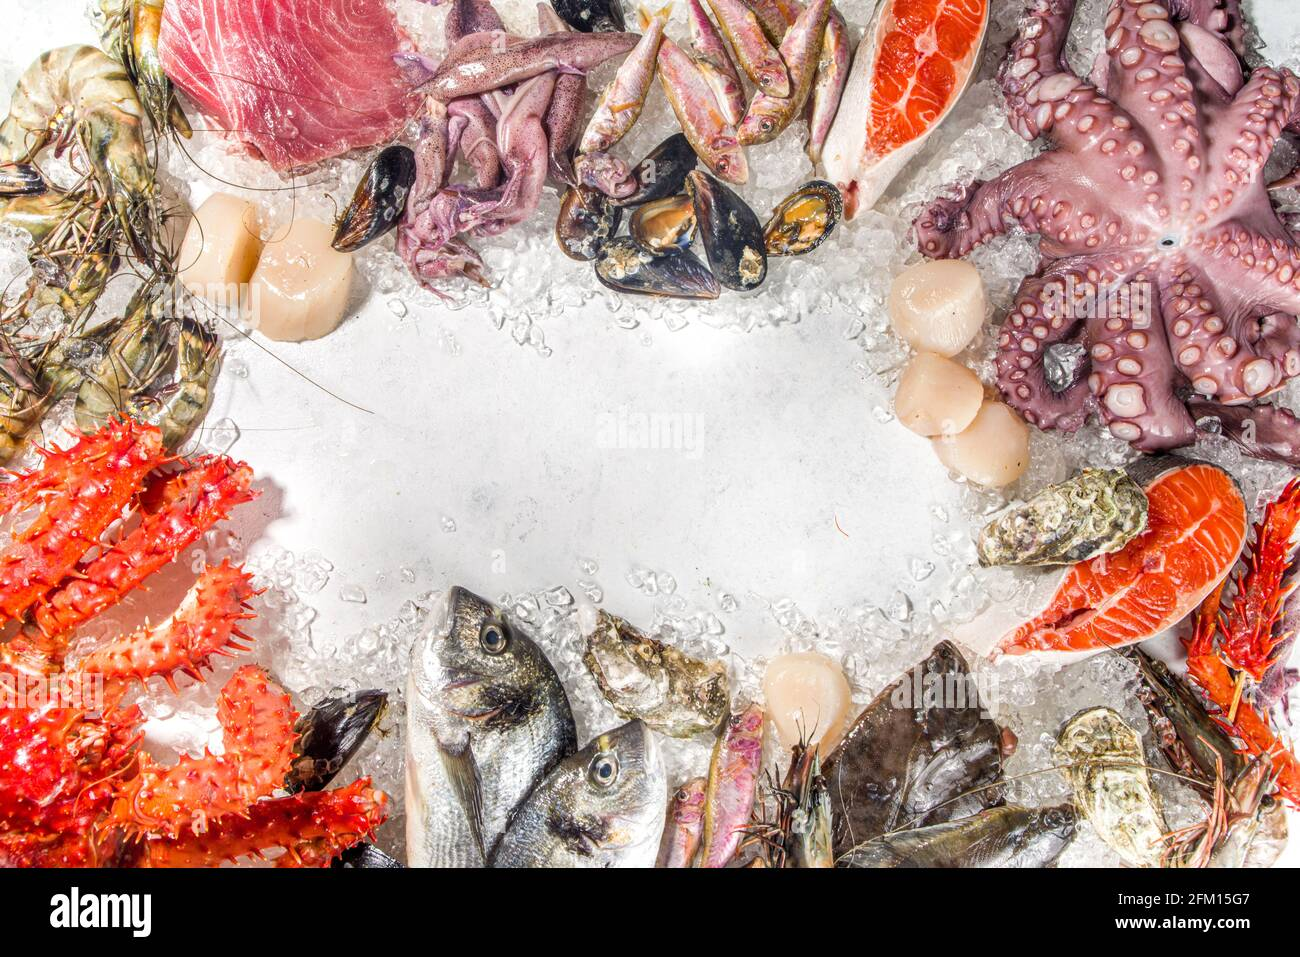 Set of various fresh raw seafood - octopus, crab, squid, shrimp prawn, oyster, mussels, salmon tuna dorada fish with spices of herbs lemon, white back Stock Photo